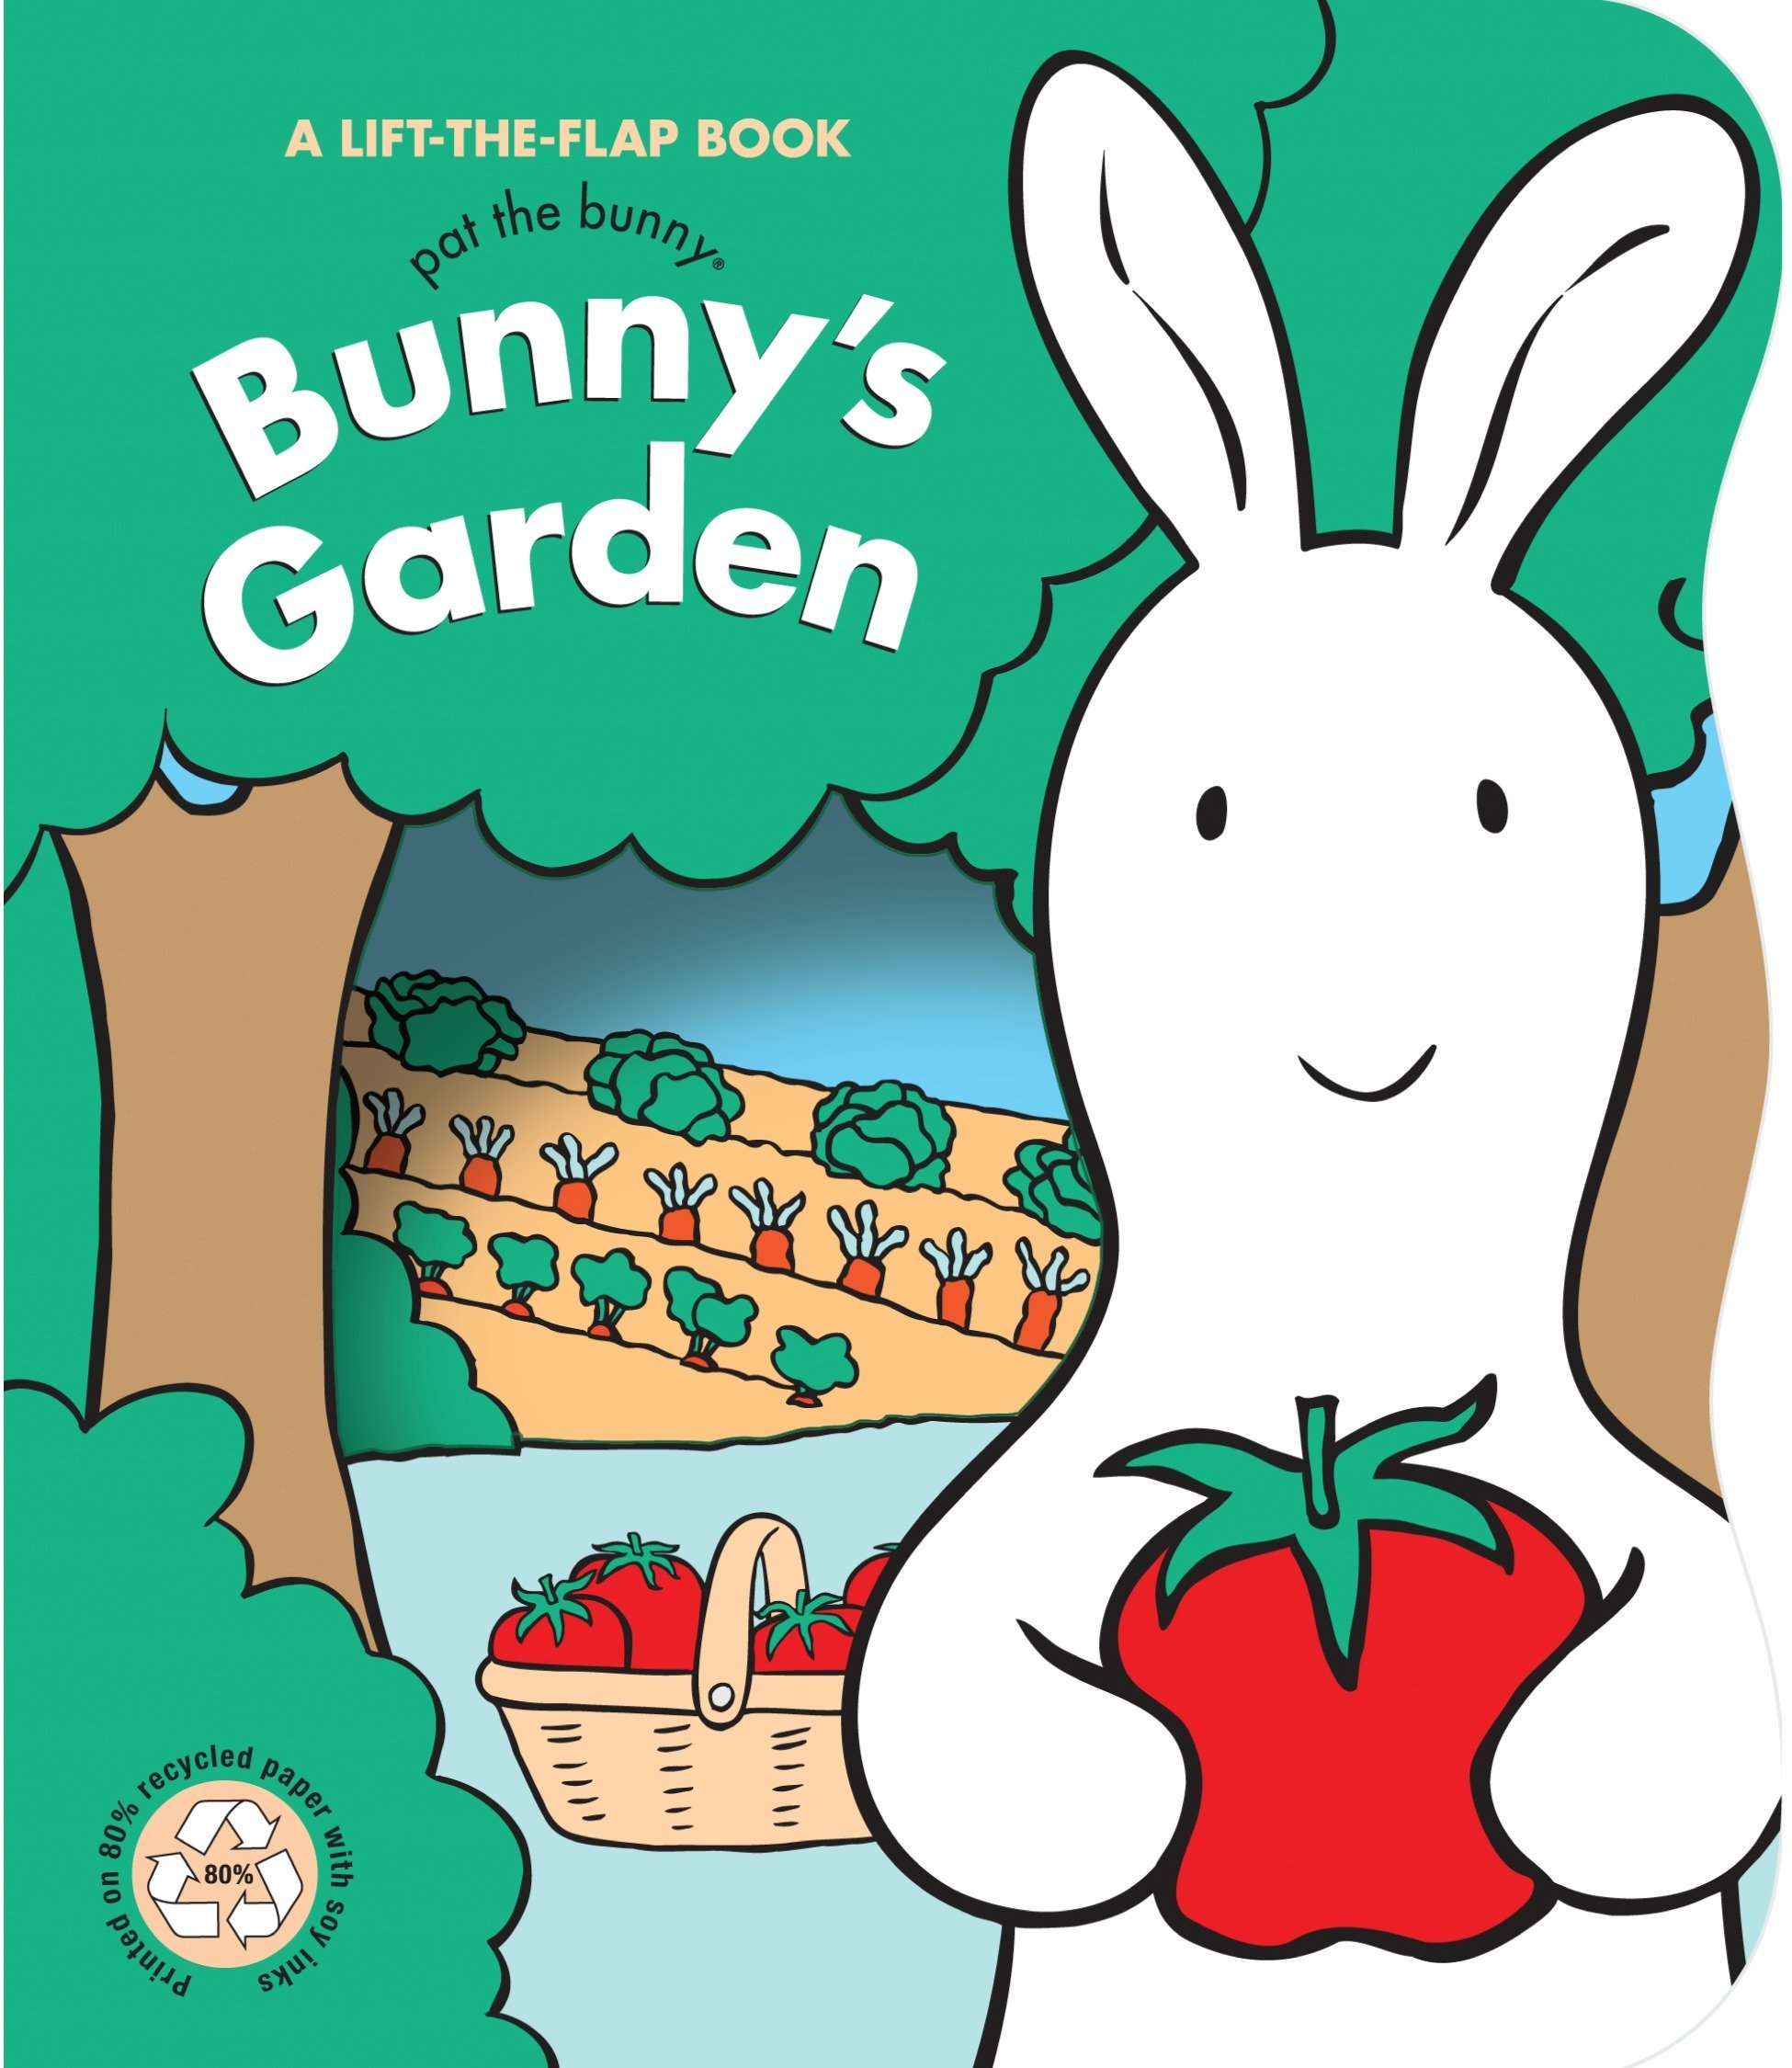 BUNNY'S GARDEN - SHA: Golden Books: 9780375857881: Amazon